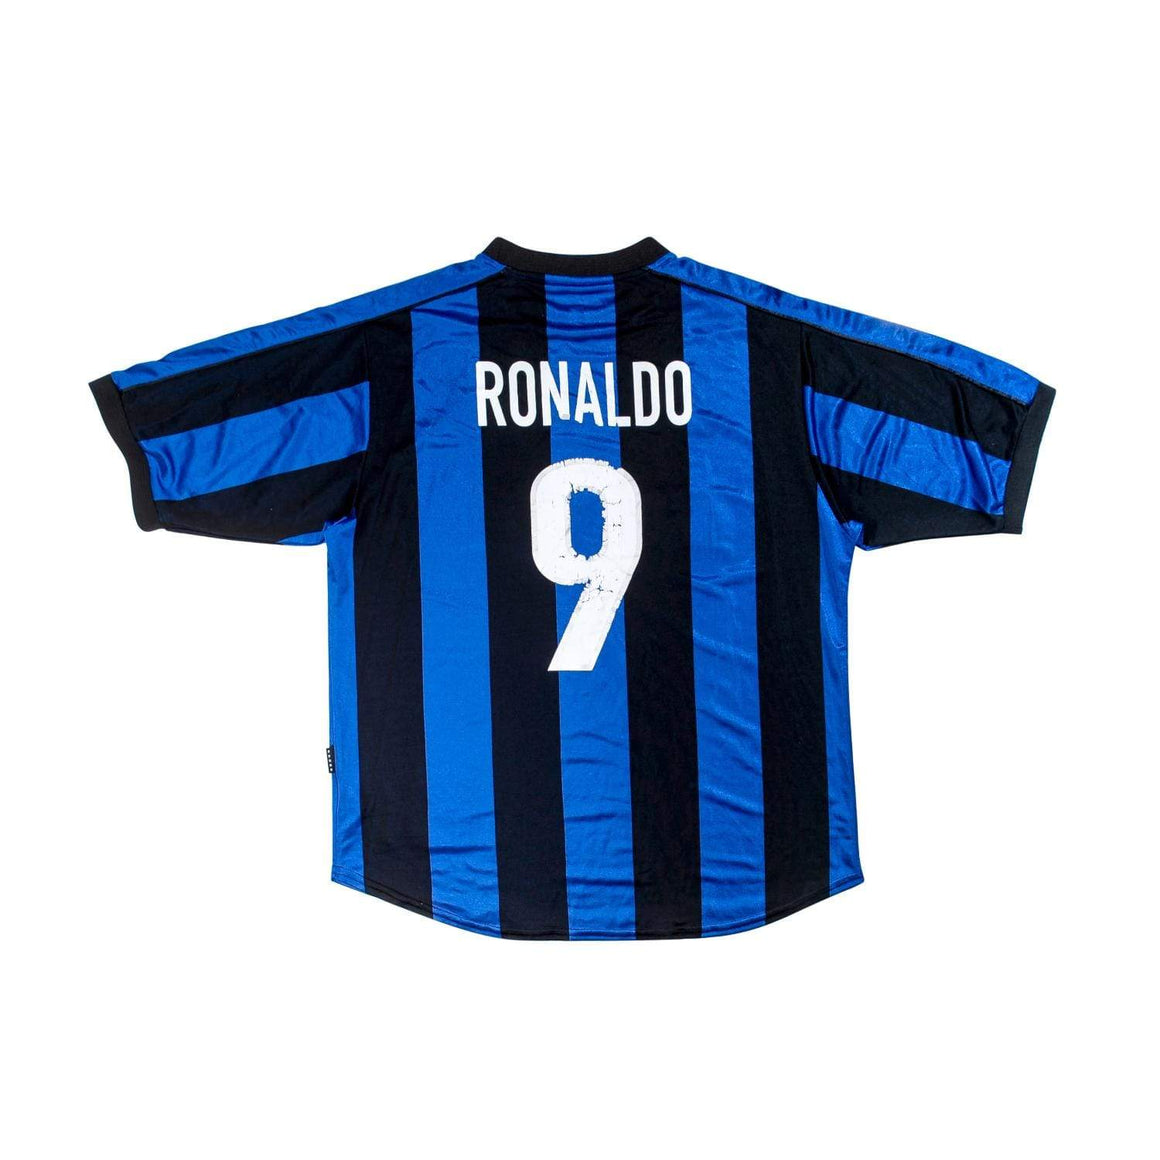 1999-00 Inter Milan home shirt #9 RONALDO XL Very Good - Football Shirt Collective